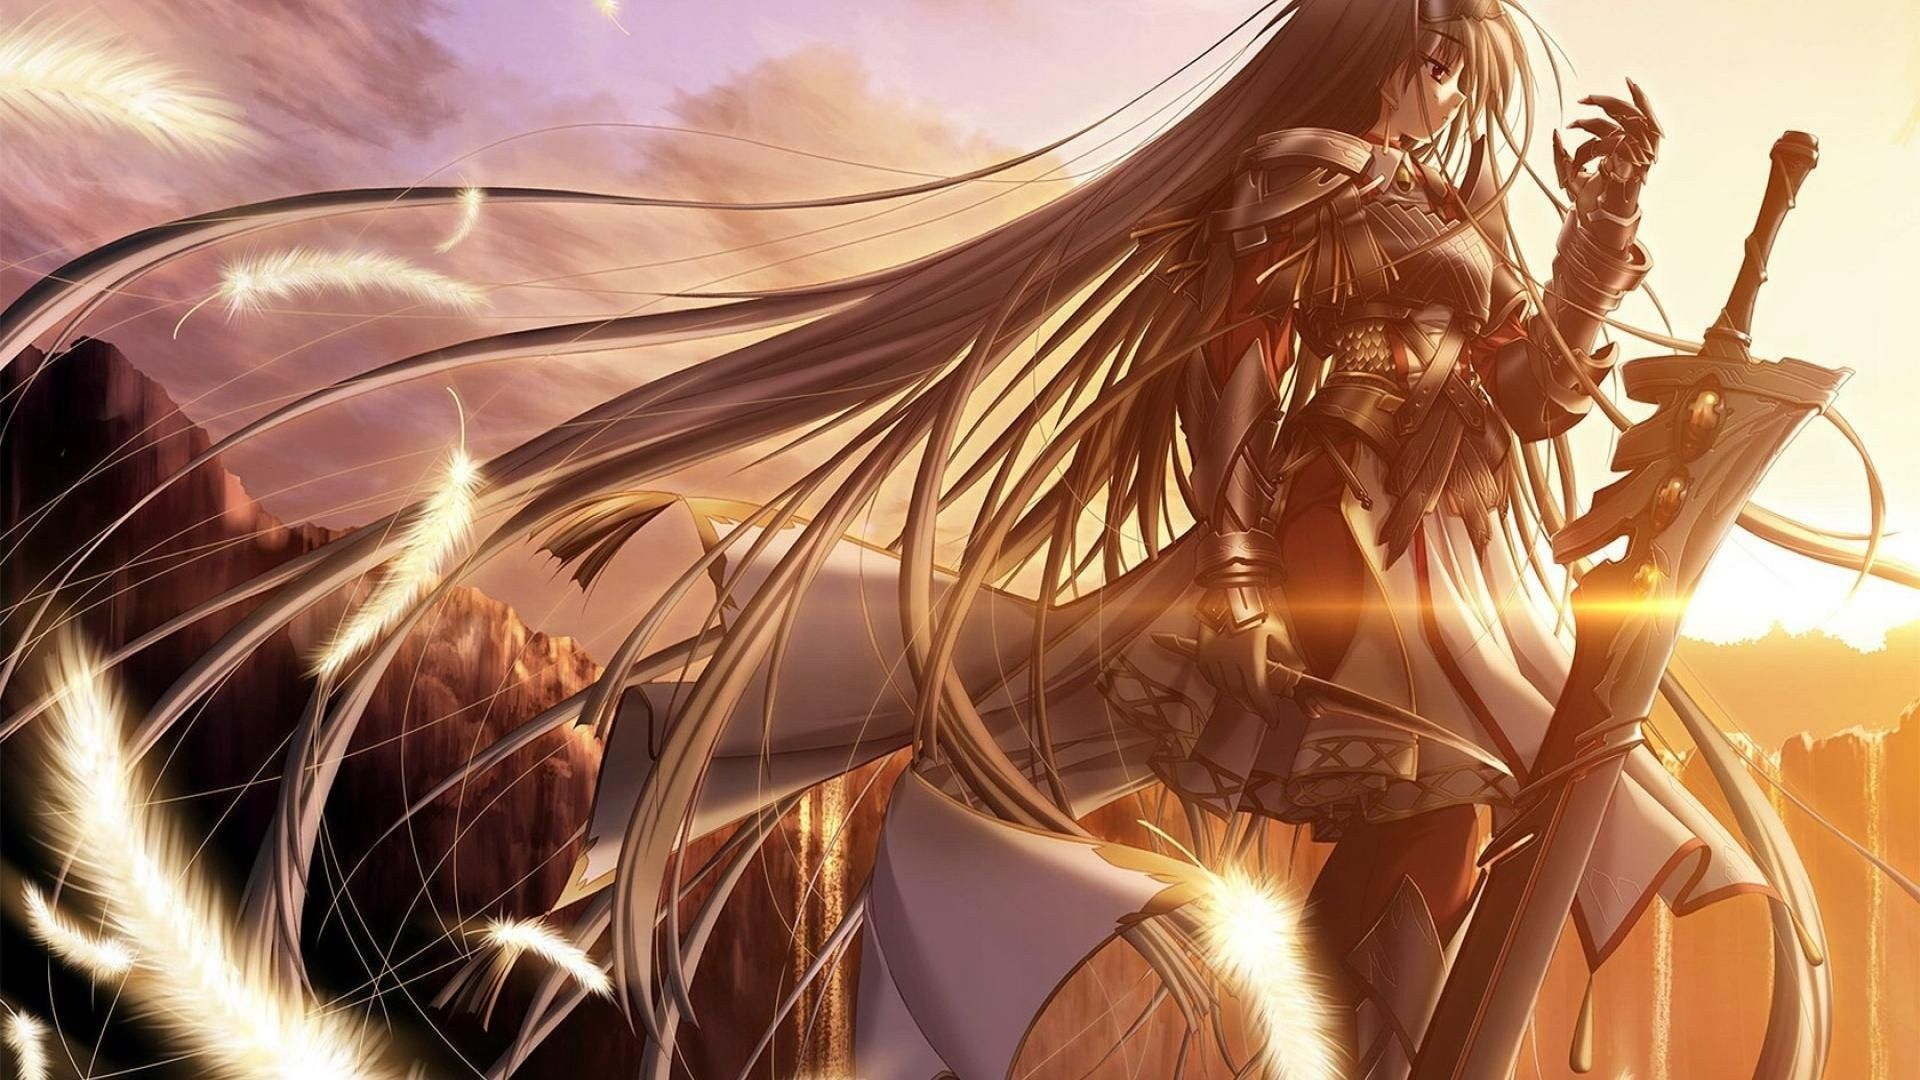 Best 10mn Wallapapers Trend In 2020 Cool Anime Wallpapers Hd Anime Wallpapers Anime Wallpaper Download